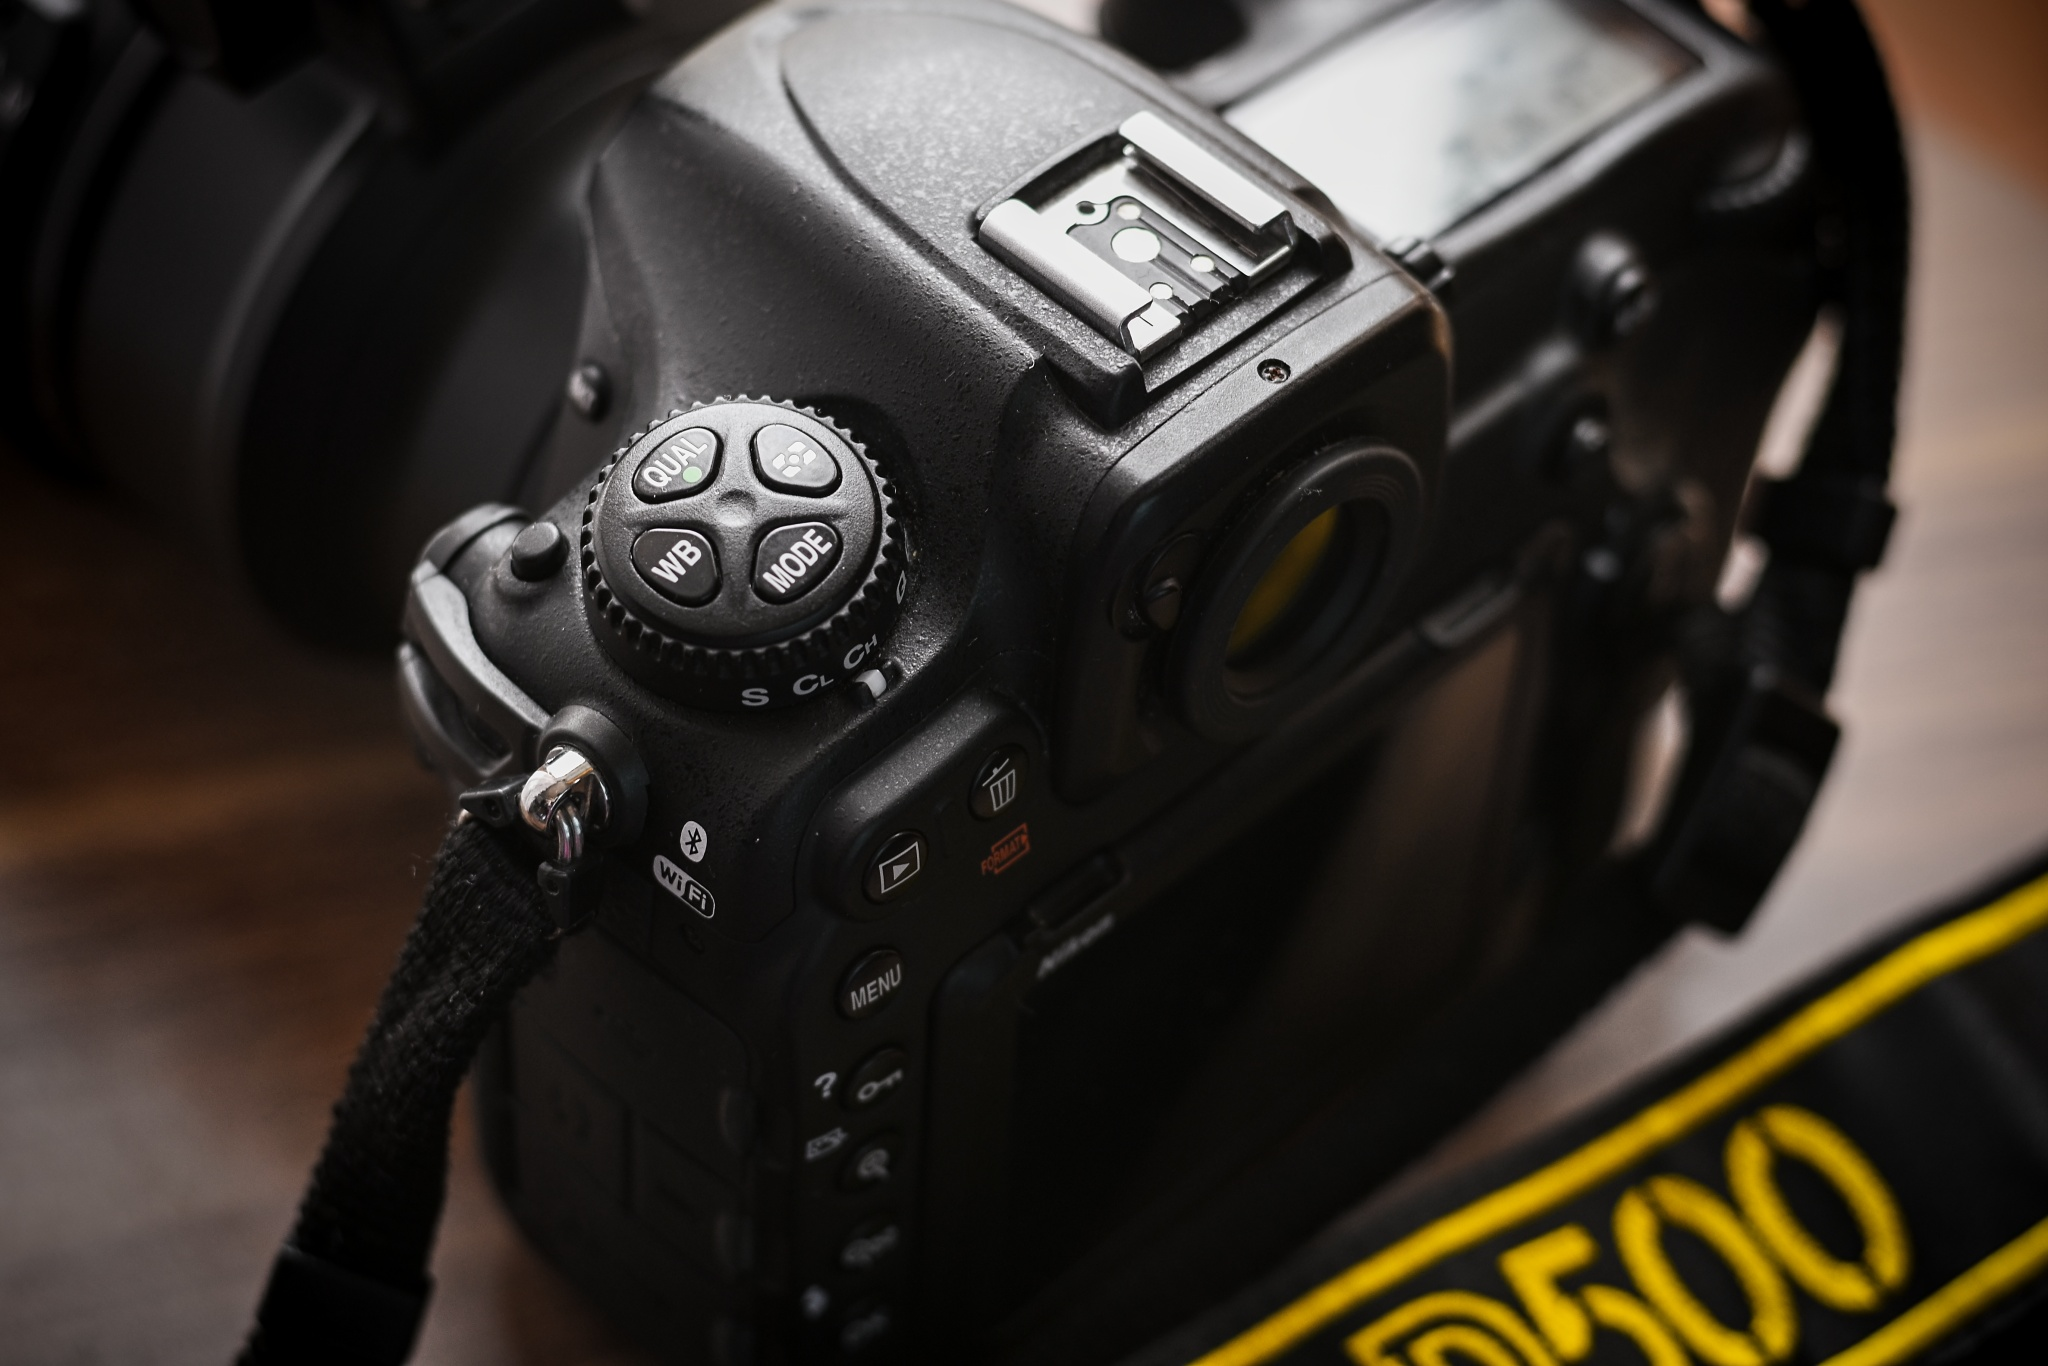 Choosing Sports Photography Gear I: Picking a Camera The MODE button on the Nikon D500.